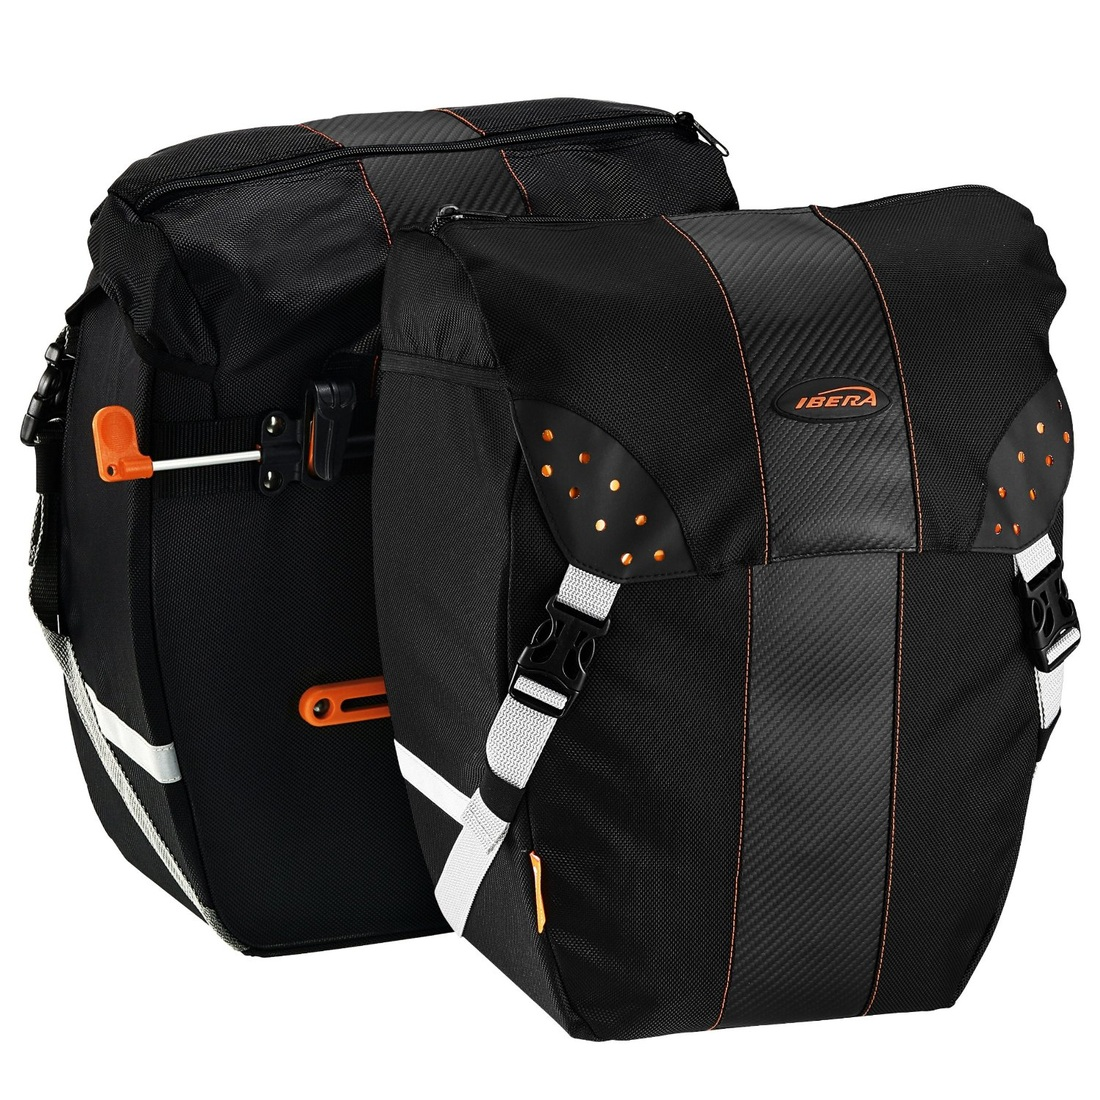 Picture of Ibera Bicycle PakRak Clip-On Quick-Release All Weather Panniers (Pair), Includes Rain Cover for bicycle touring